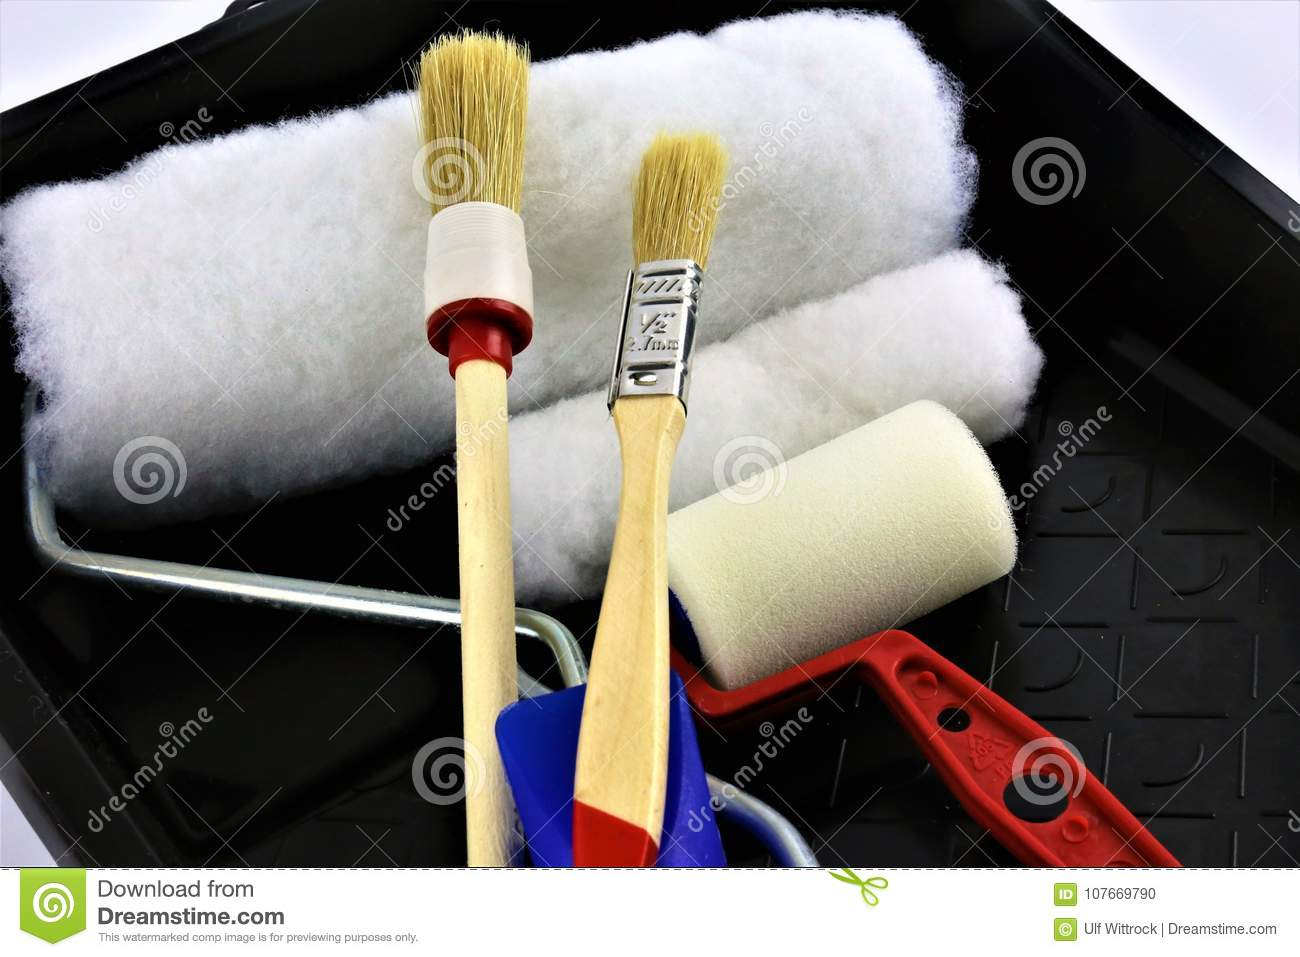 An concept Image of a home painting brushes